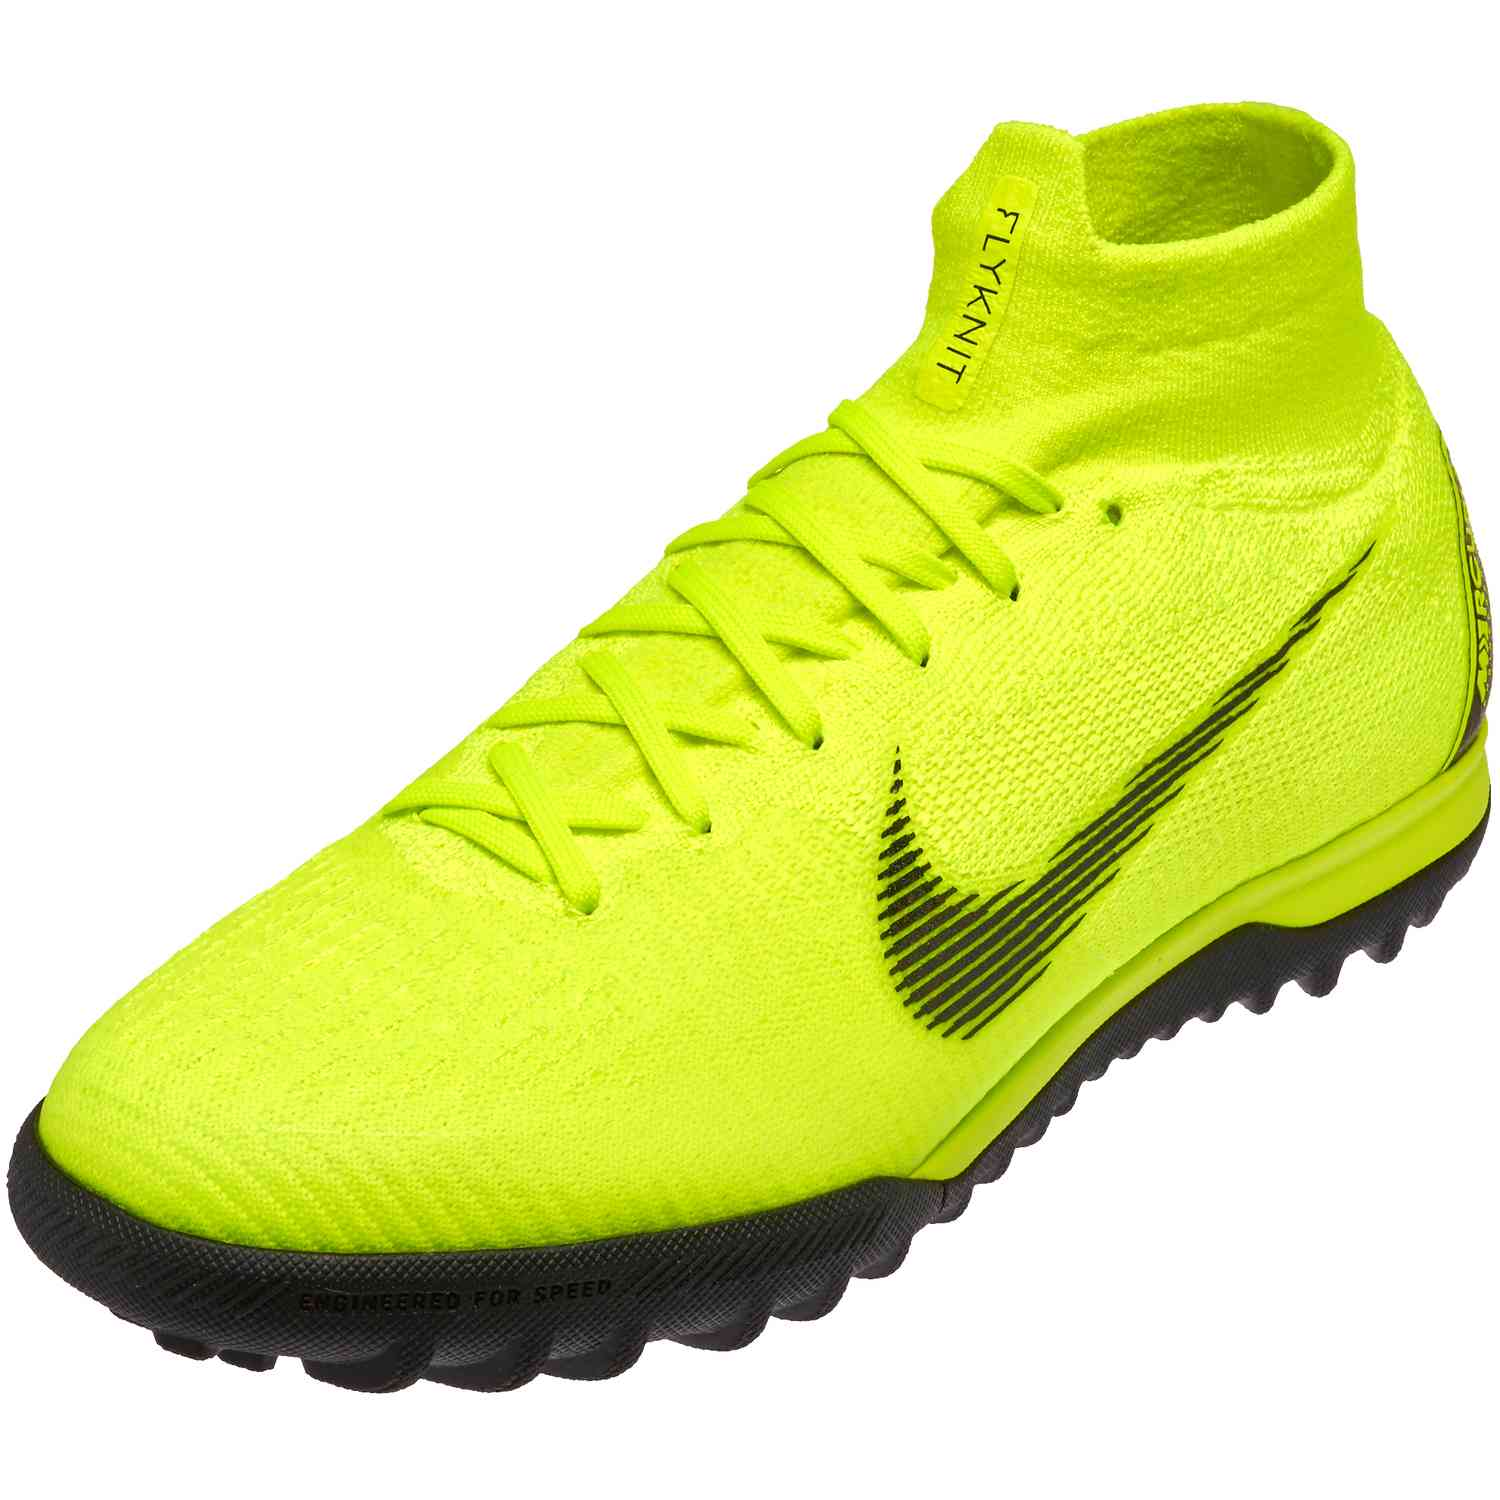 99f0627f8 Nike Mercurial SuperflyX 6 Elite TF - Volt Black - SoccerPro